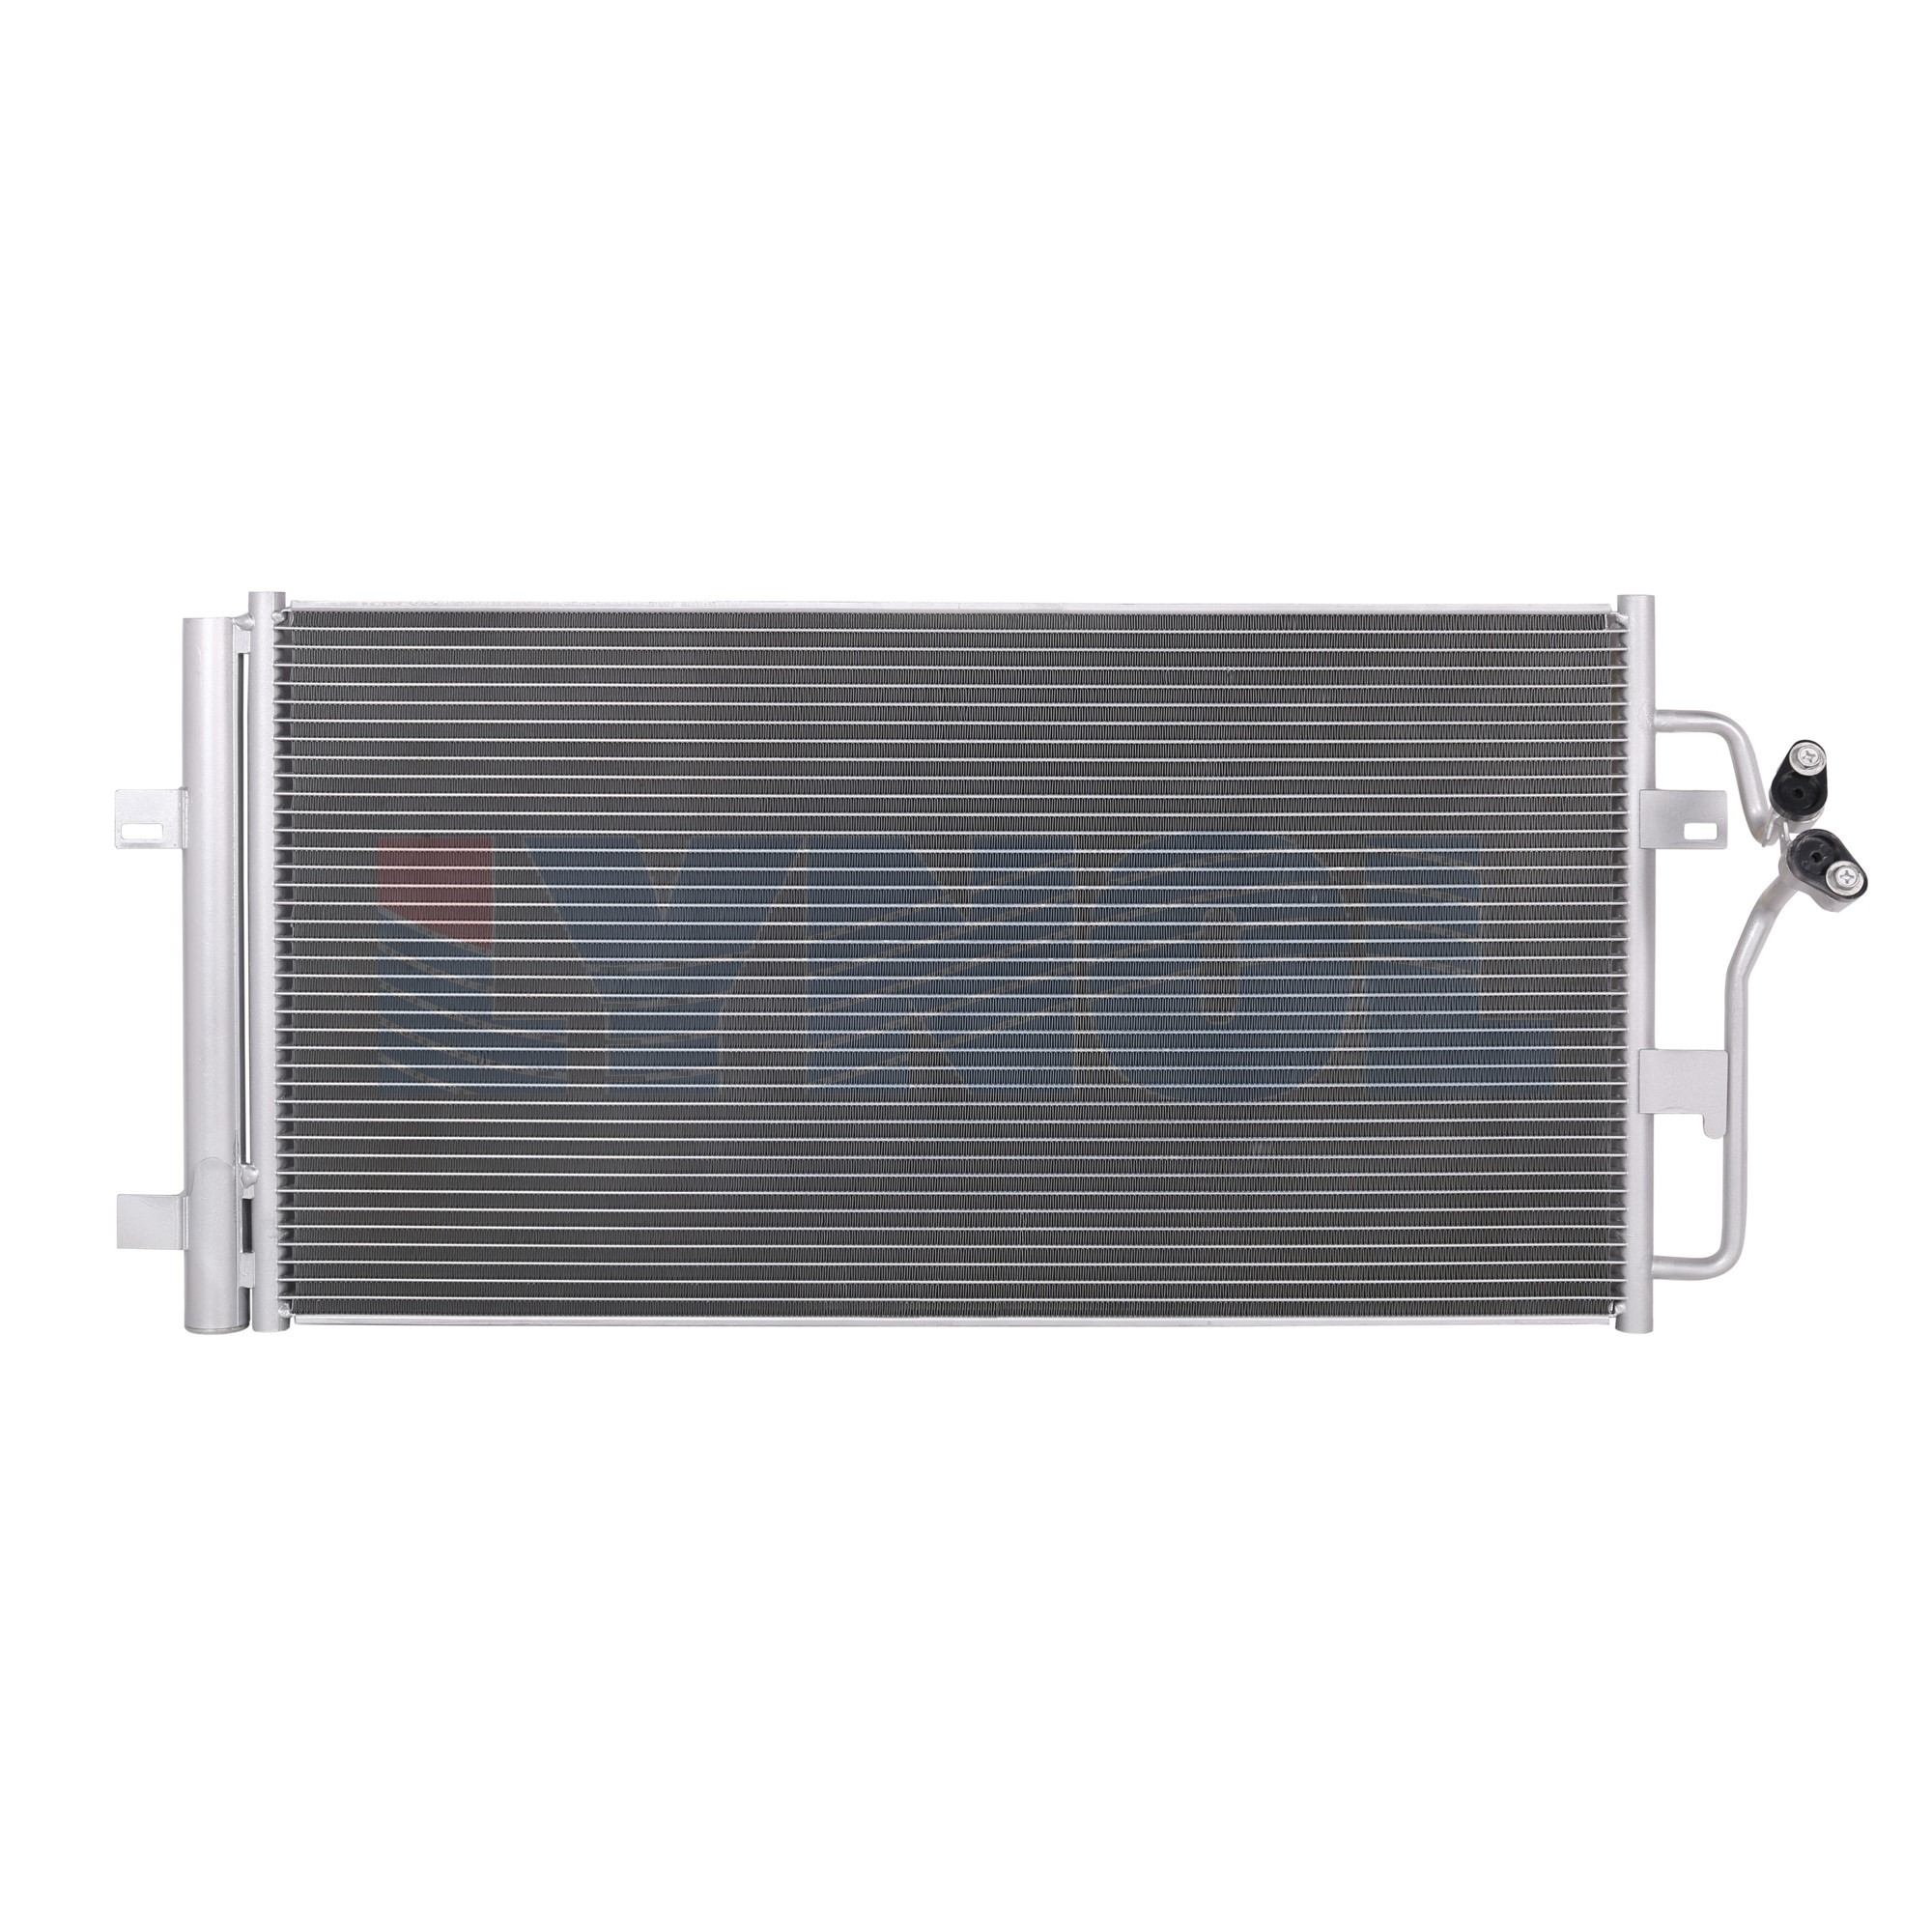 AC3519 - AC Condensers - 06-11 Buick Lucerne / Cadillac DTS